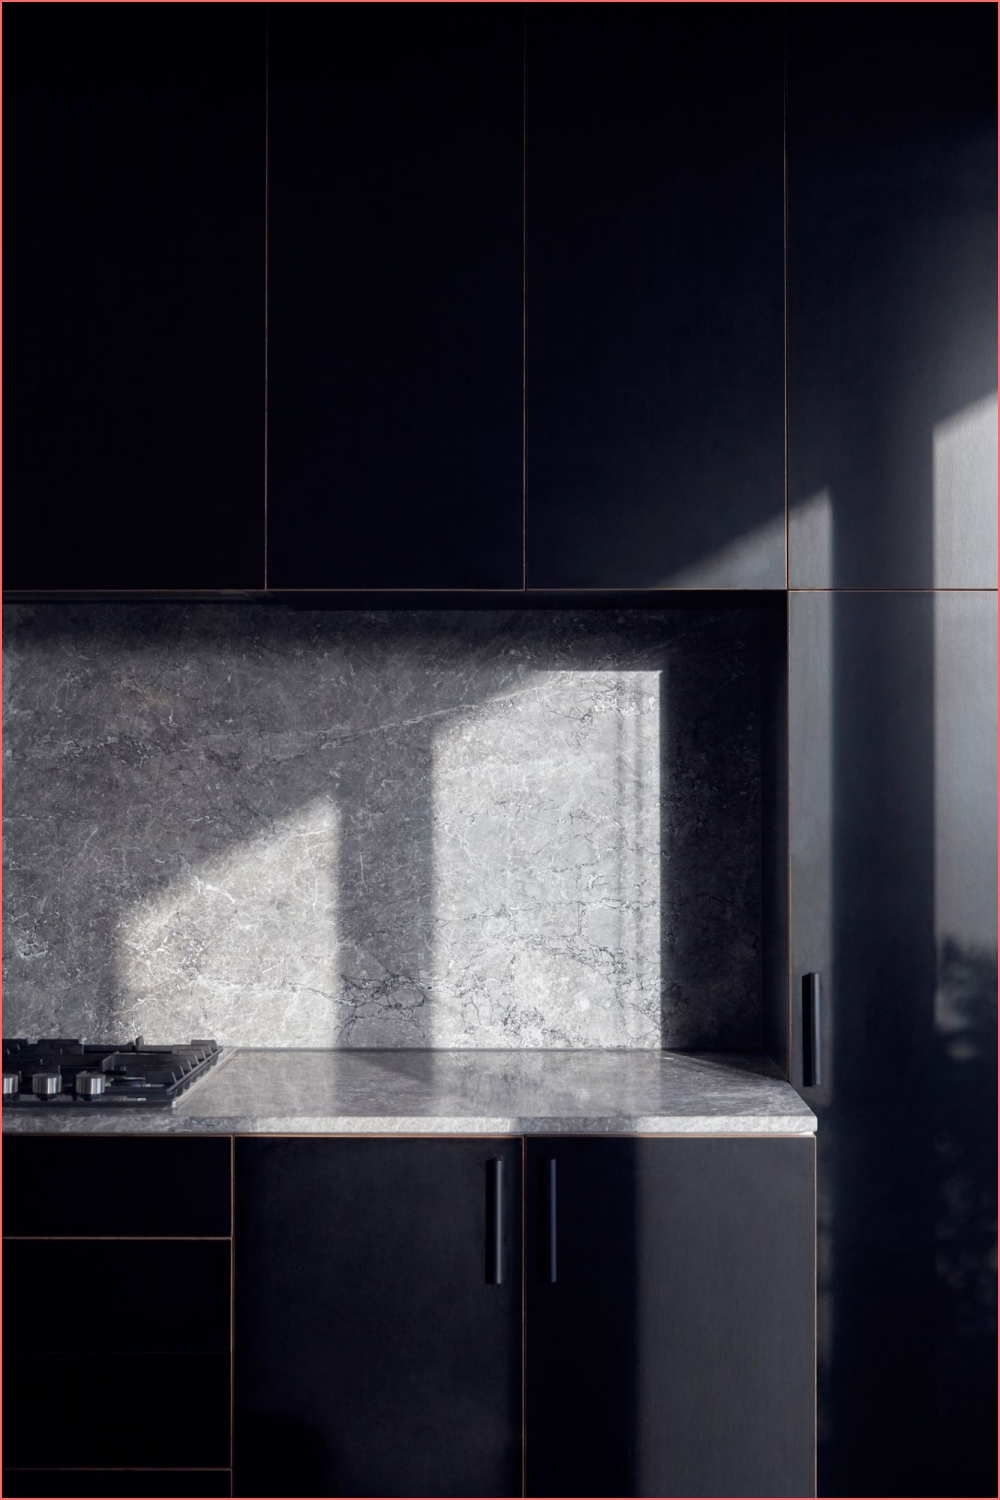 black modern kitchen with grey stone bench and splashback on black and grey kitchen on black and grey kitchen post on 2020-11-21 15:53:52